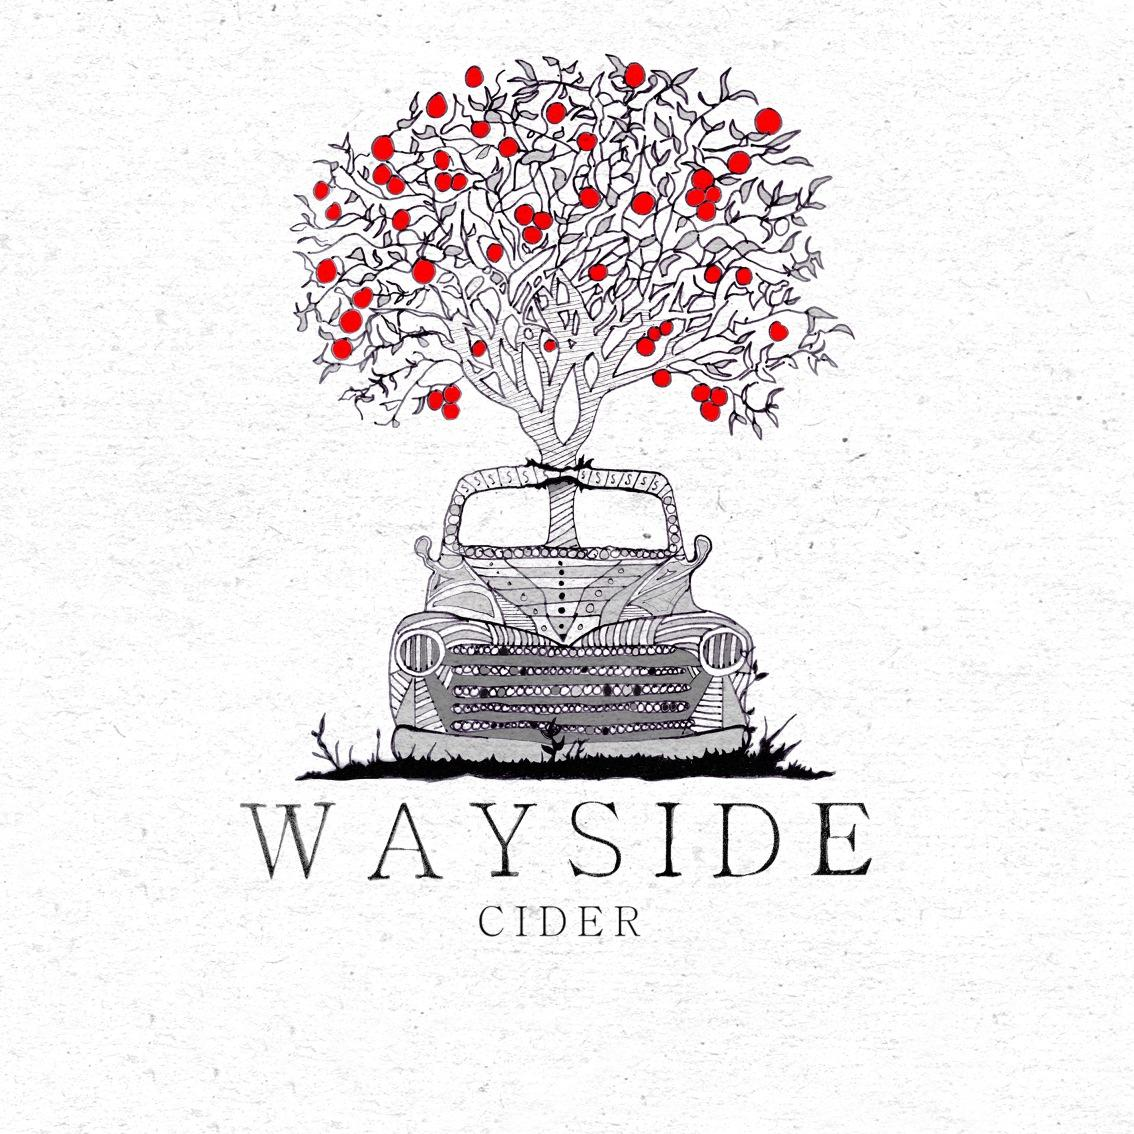 Wayside Cider - Alex Wilson & Irene Hussey started Wayside Cider in 2014 after meeting at the Catskill Amateur Cider Making Contest at Table On Ten - Irene won the competition. Alex came second, but maintains to this day he